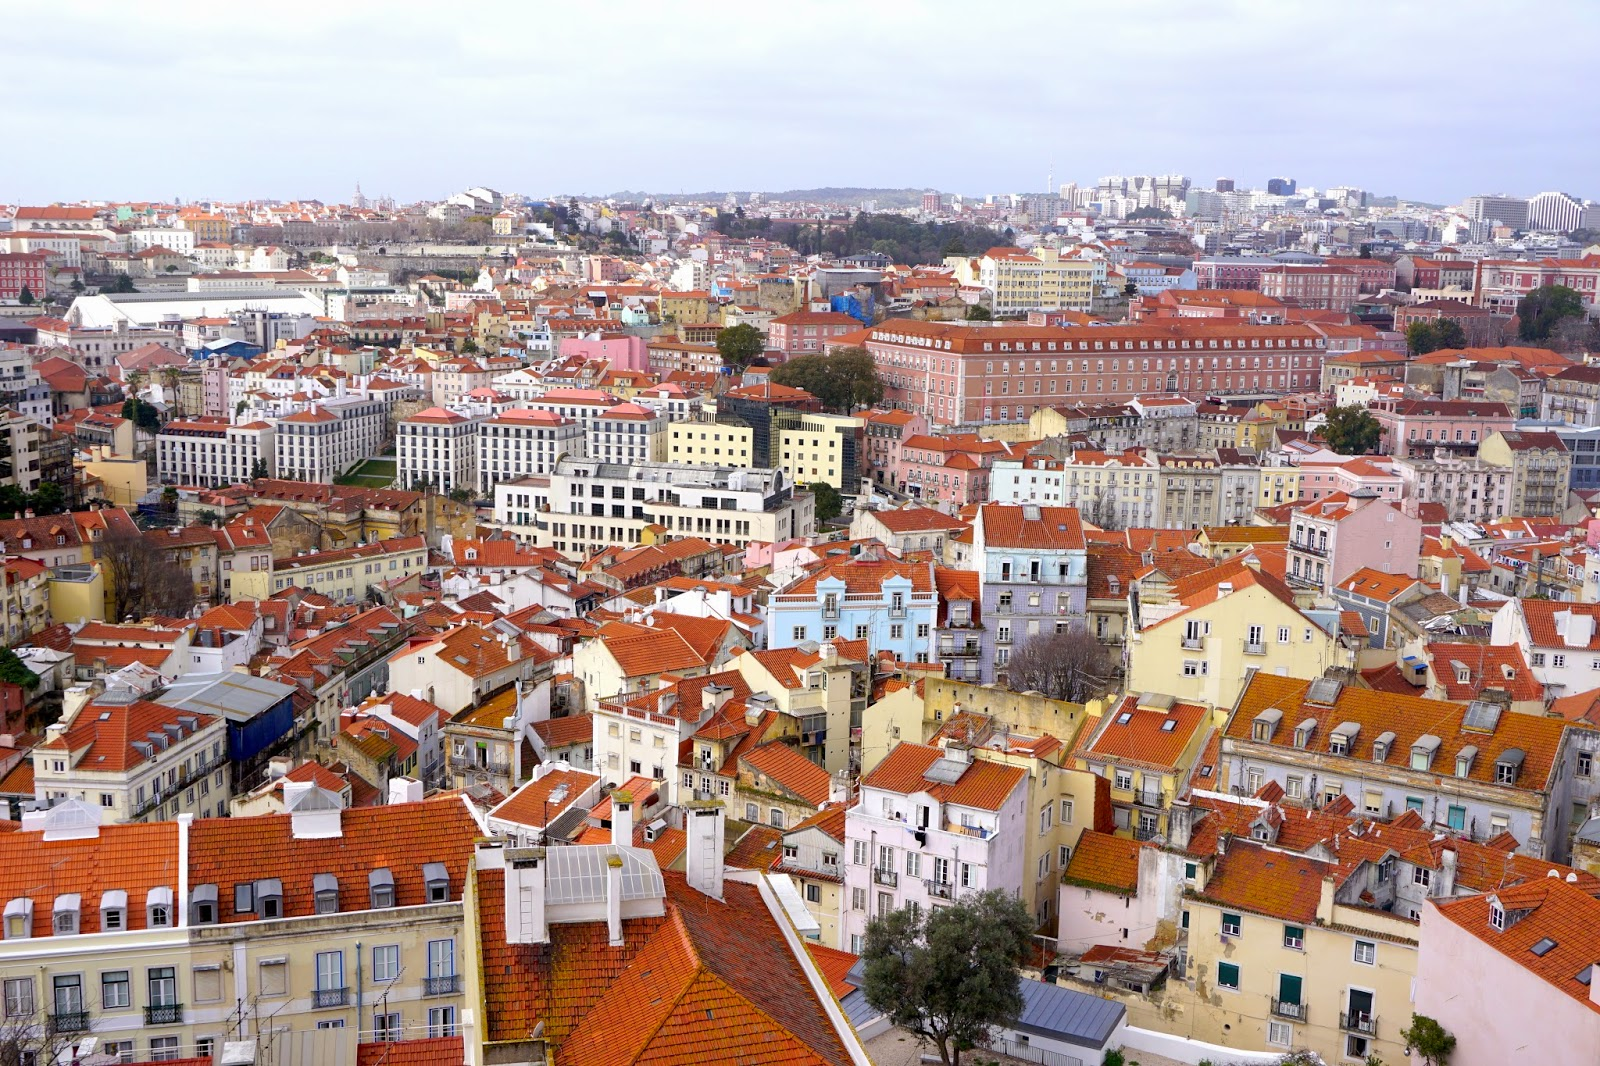 View from Miradouro Da Graca in the morning overlooking the colourful city buildings